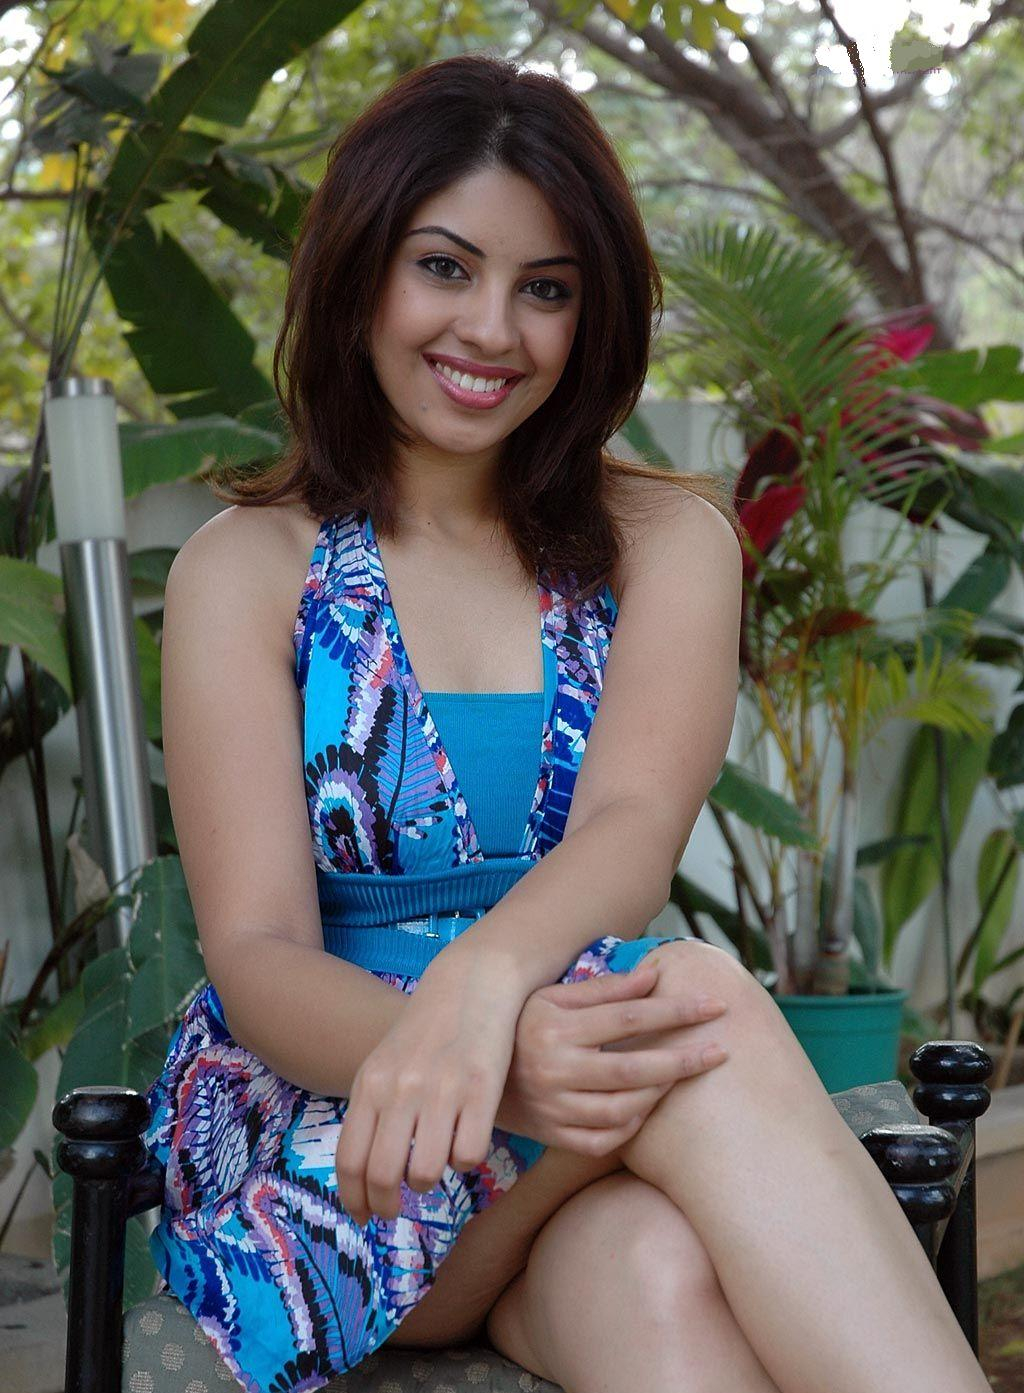 high quality bollywood celebrity pictures  richa gangopadhyay super sexy photoshoot